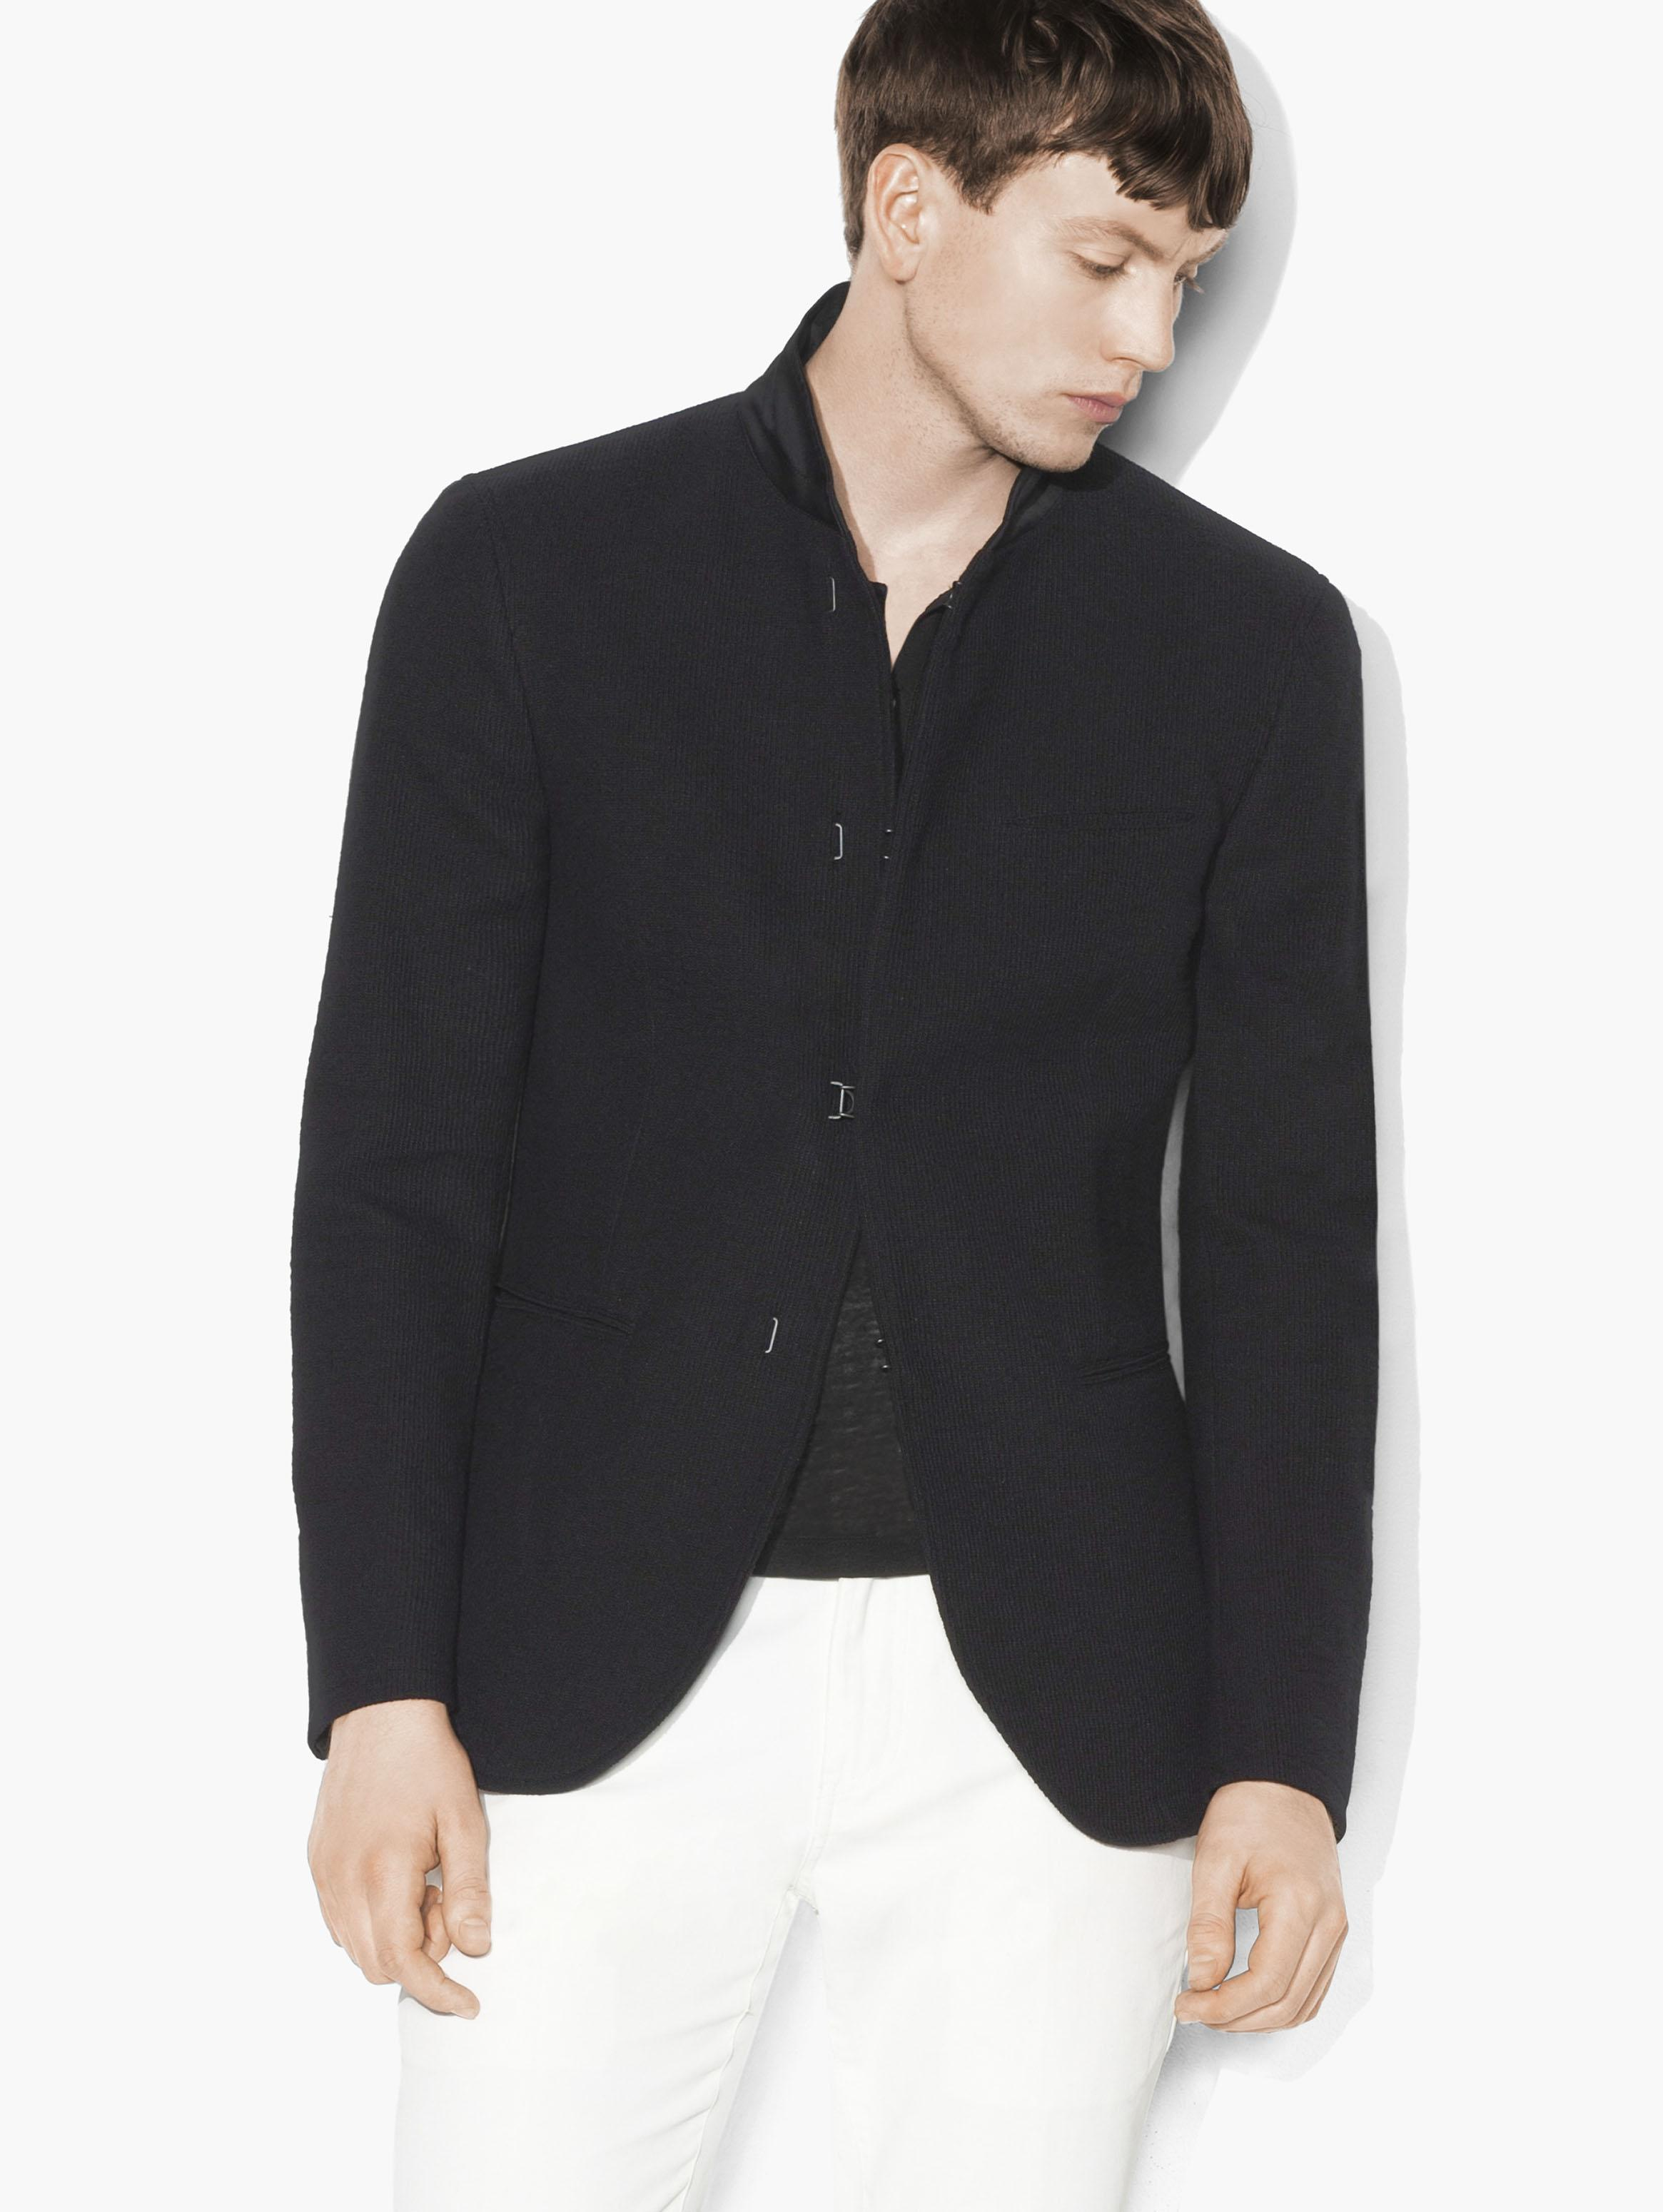 Knit Shawl Collar Jacket